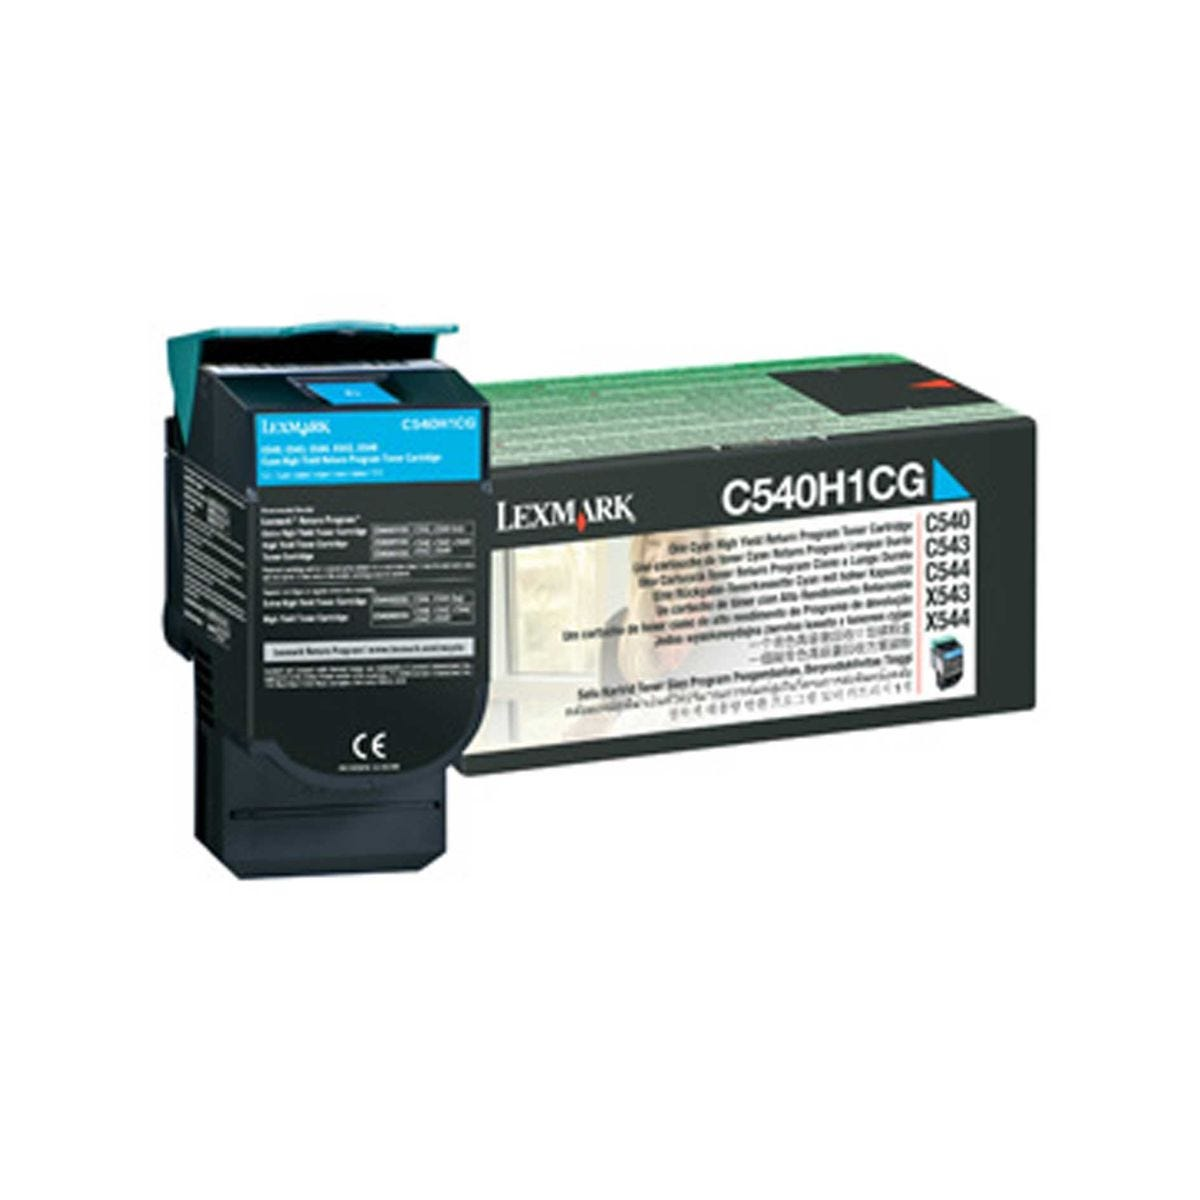 Image of Lexmark OC540H1CG High Yield Printer Ink Toner Cartridge C54X/X54X, Cyan